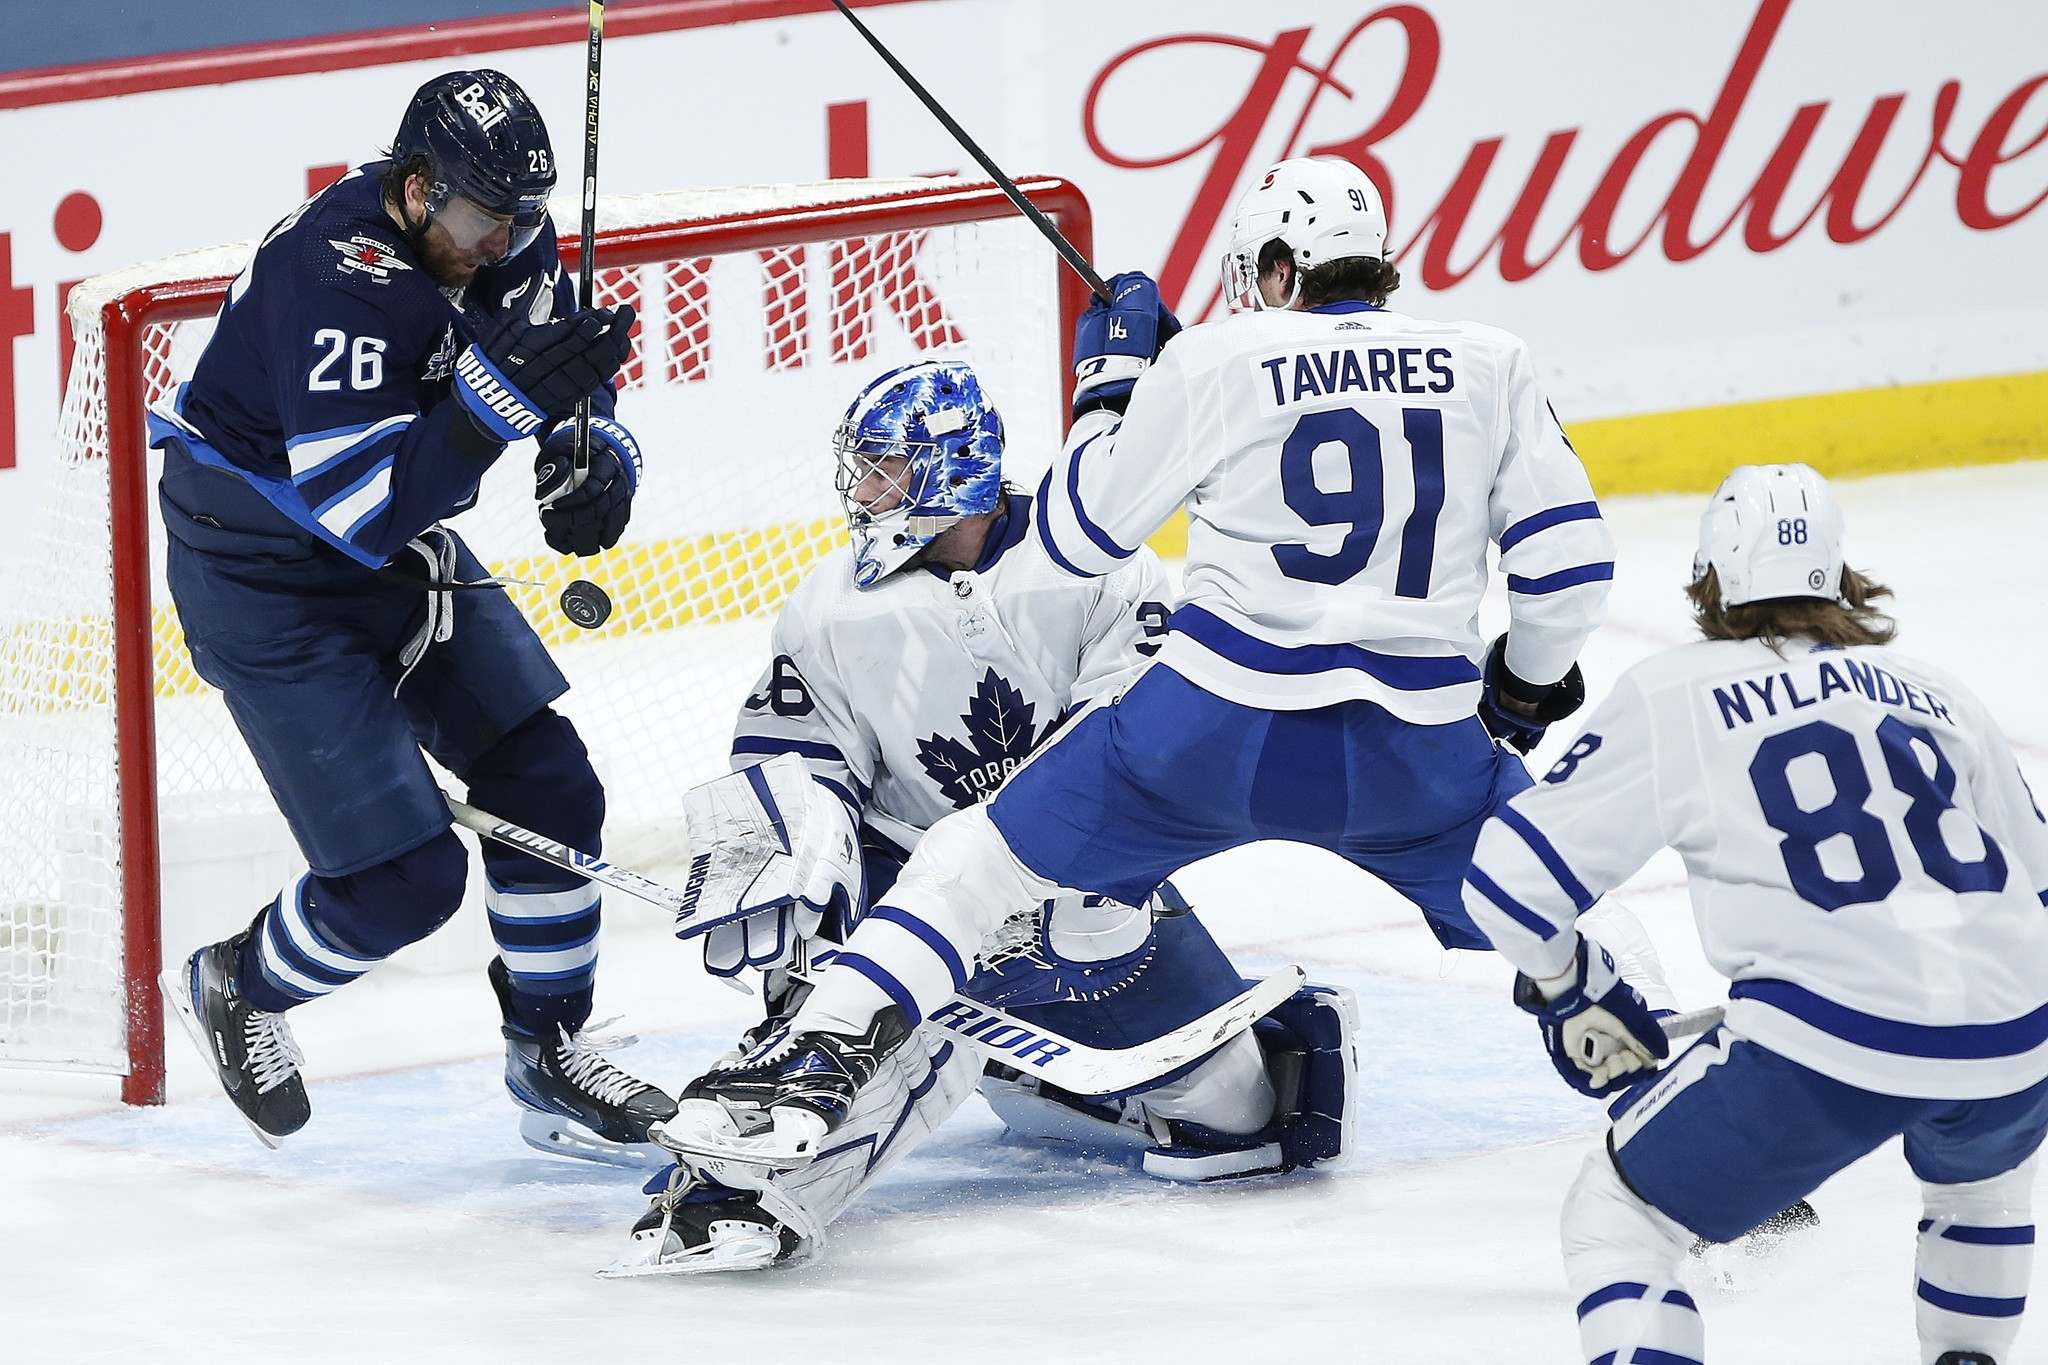 John Woods / The Canadian Press</p><p>Winnipeg Jets Captain Blake Wheeler's (left) return to the lineup was tempered by an injury to Adam Lowry and a loss to the Toronto Maple Leafs.</p>